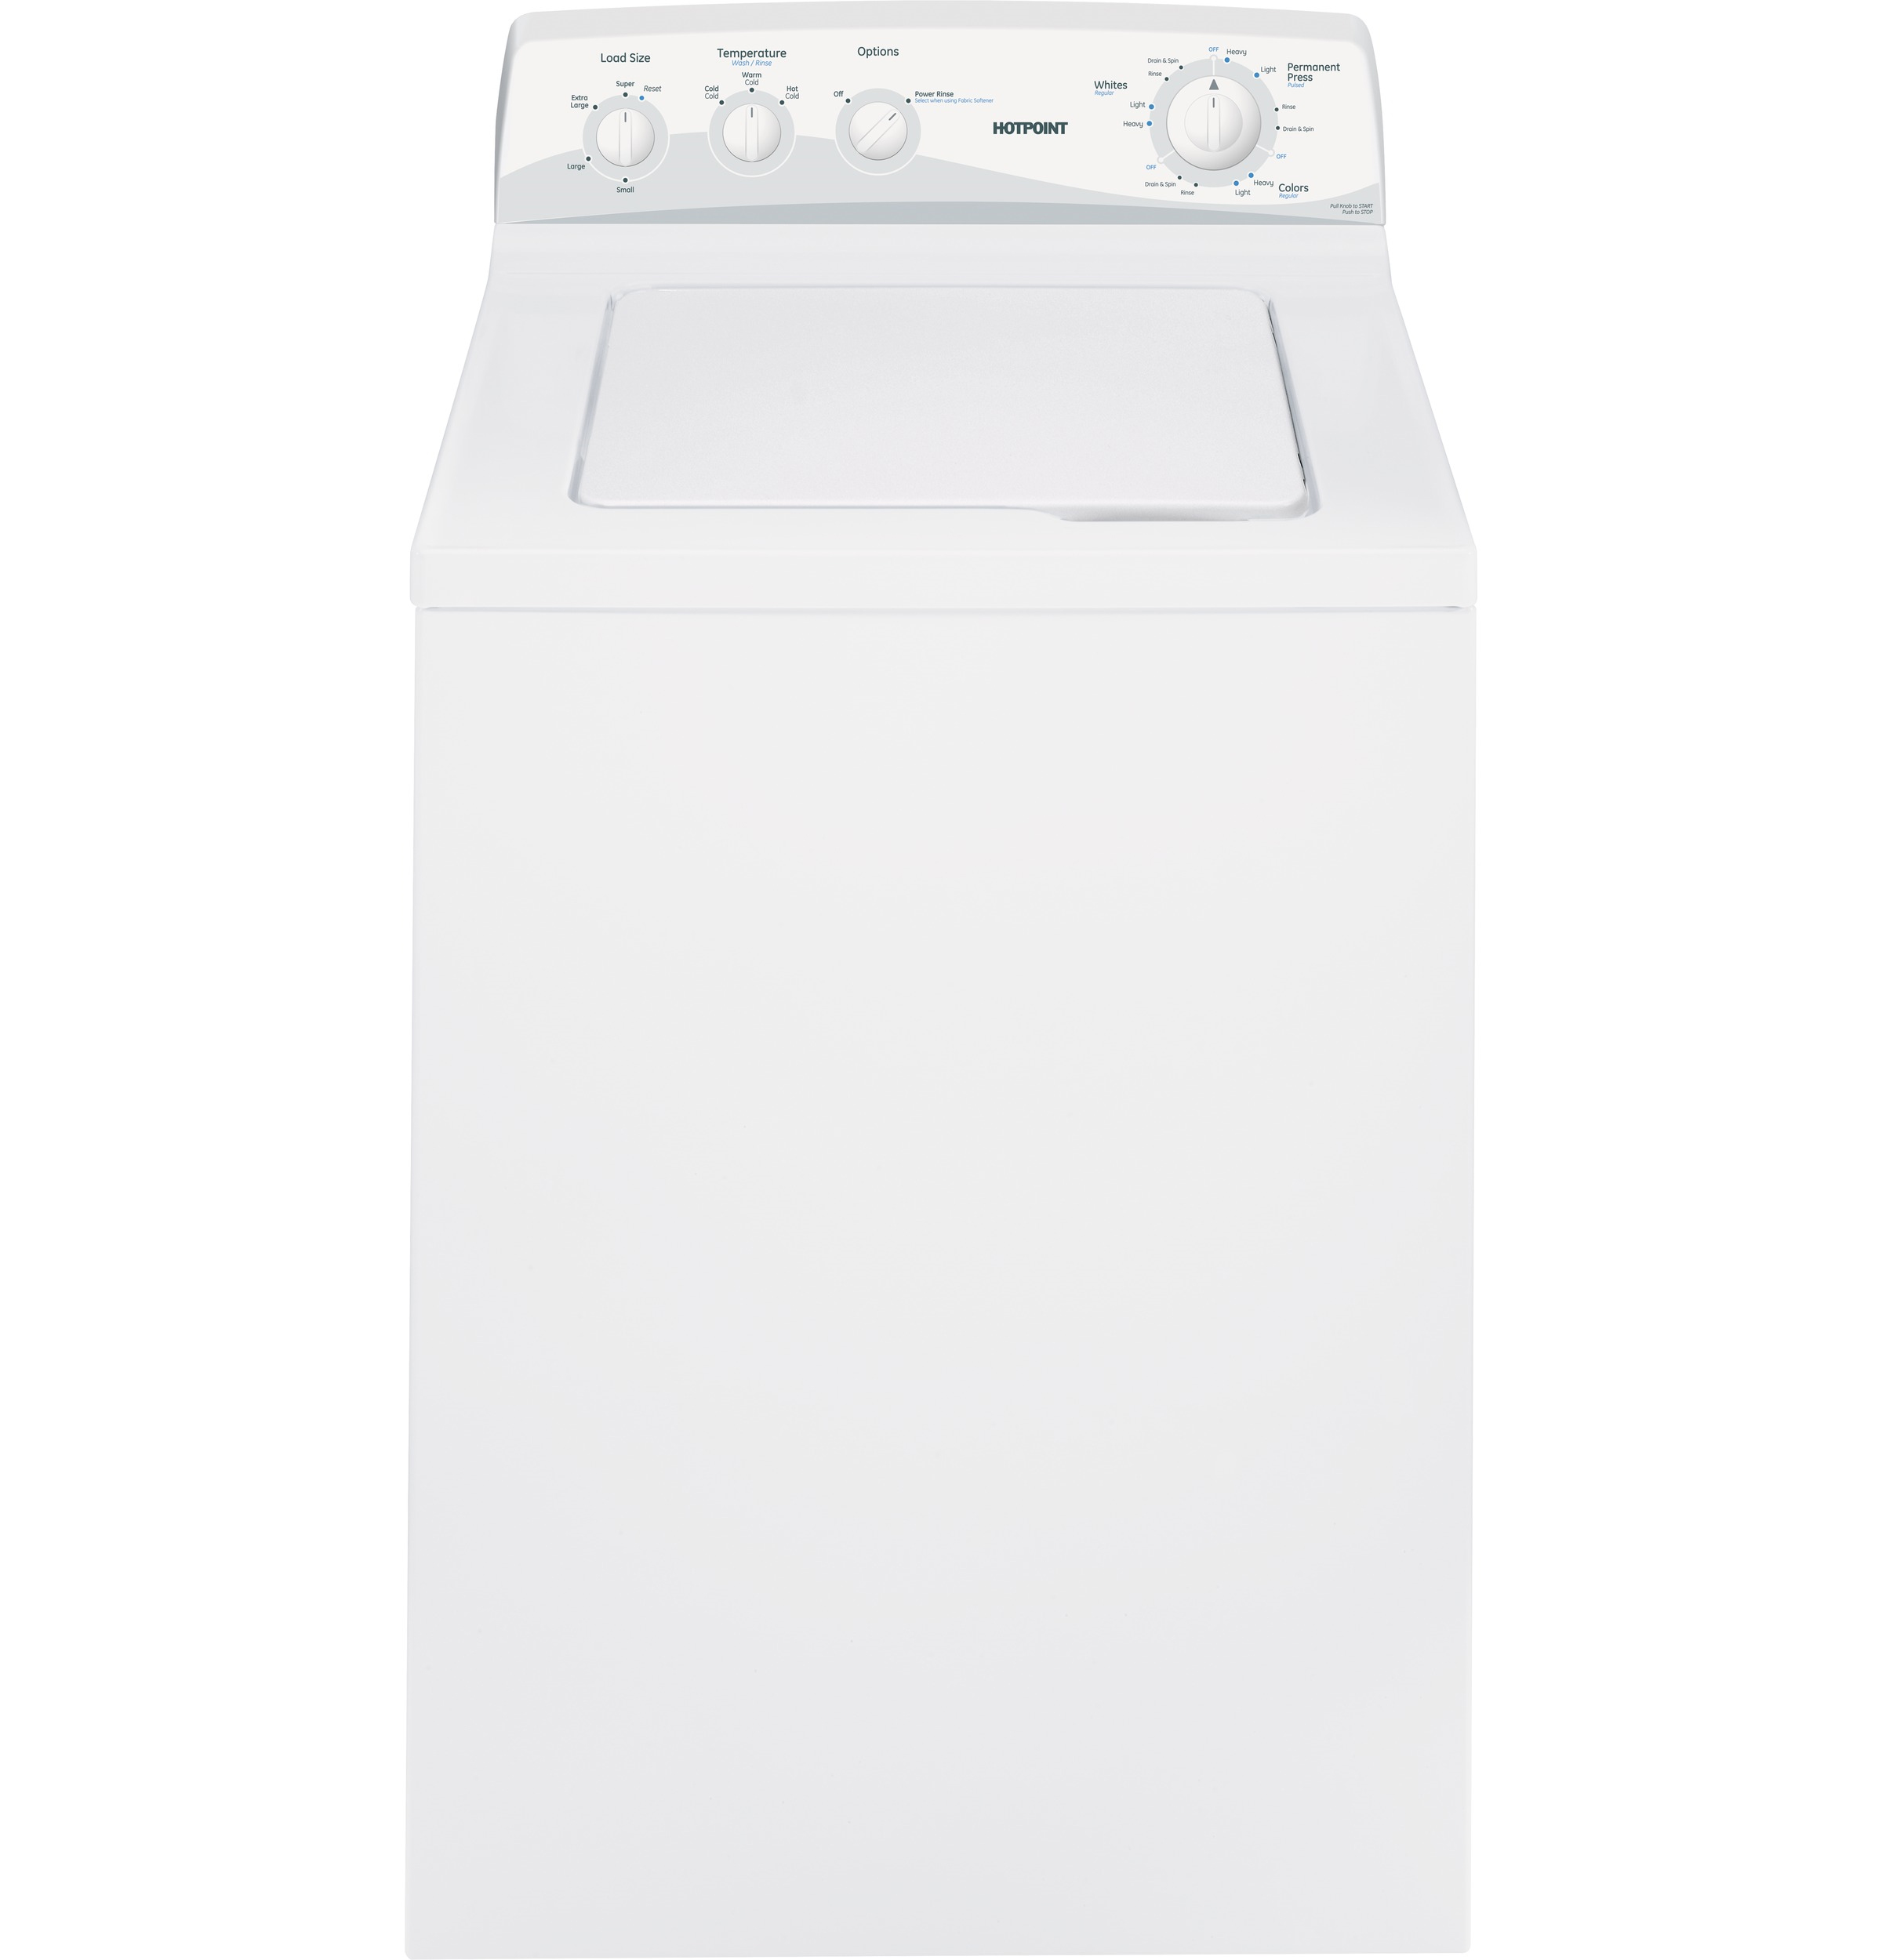 HOTPOINT 3 7 CU FT TOP LOAD WASHING MACHINE WHITE 8 CYCLES